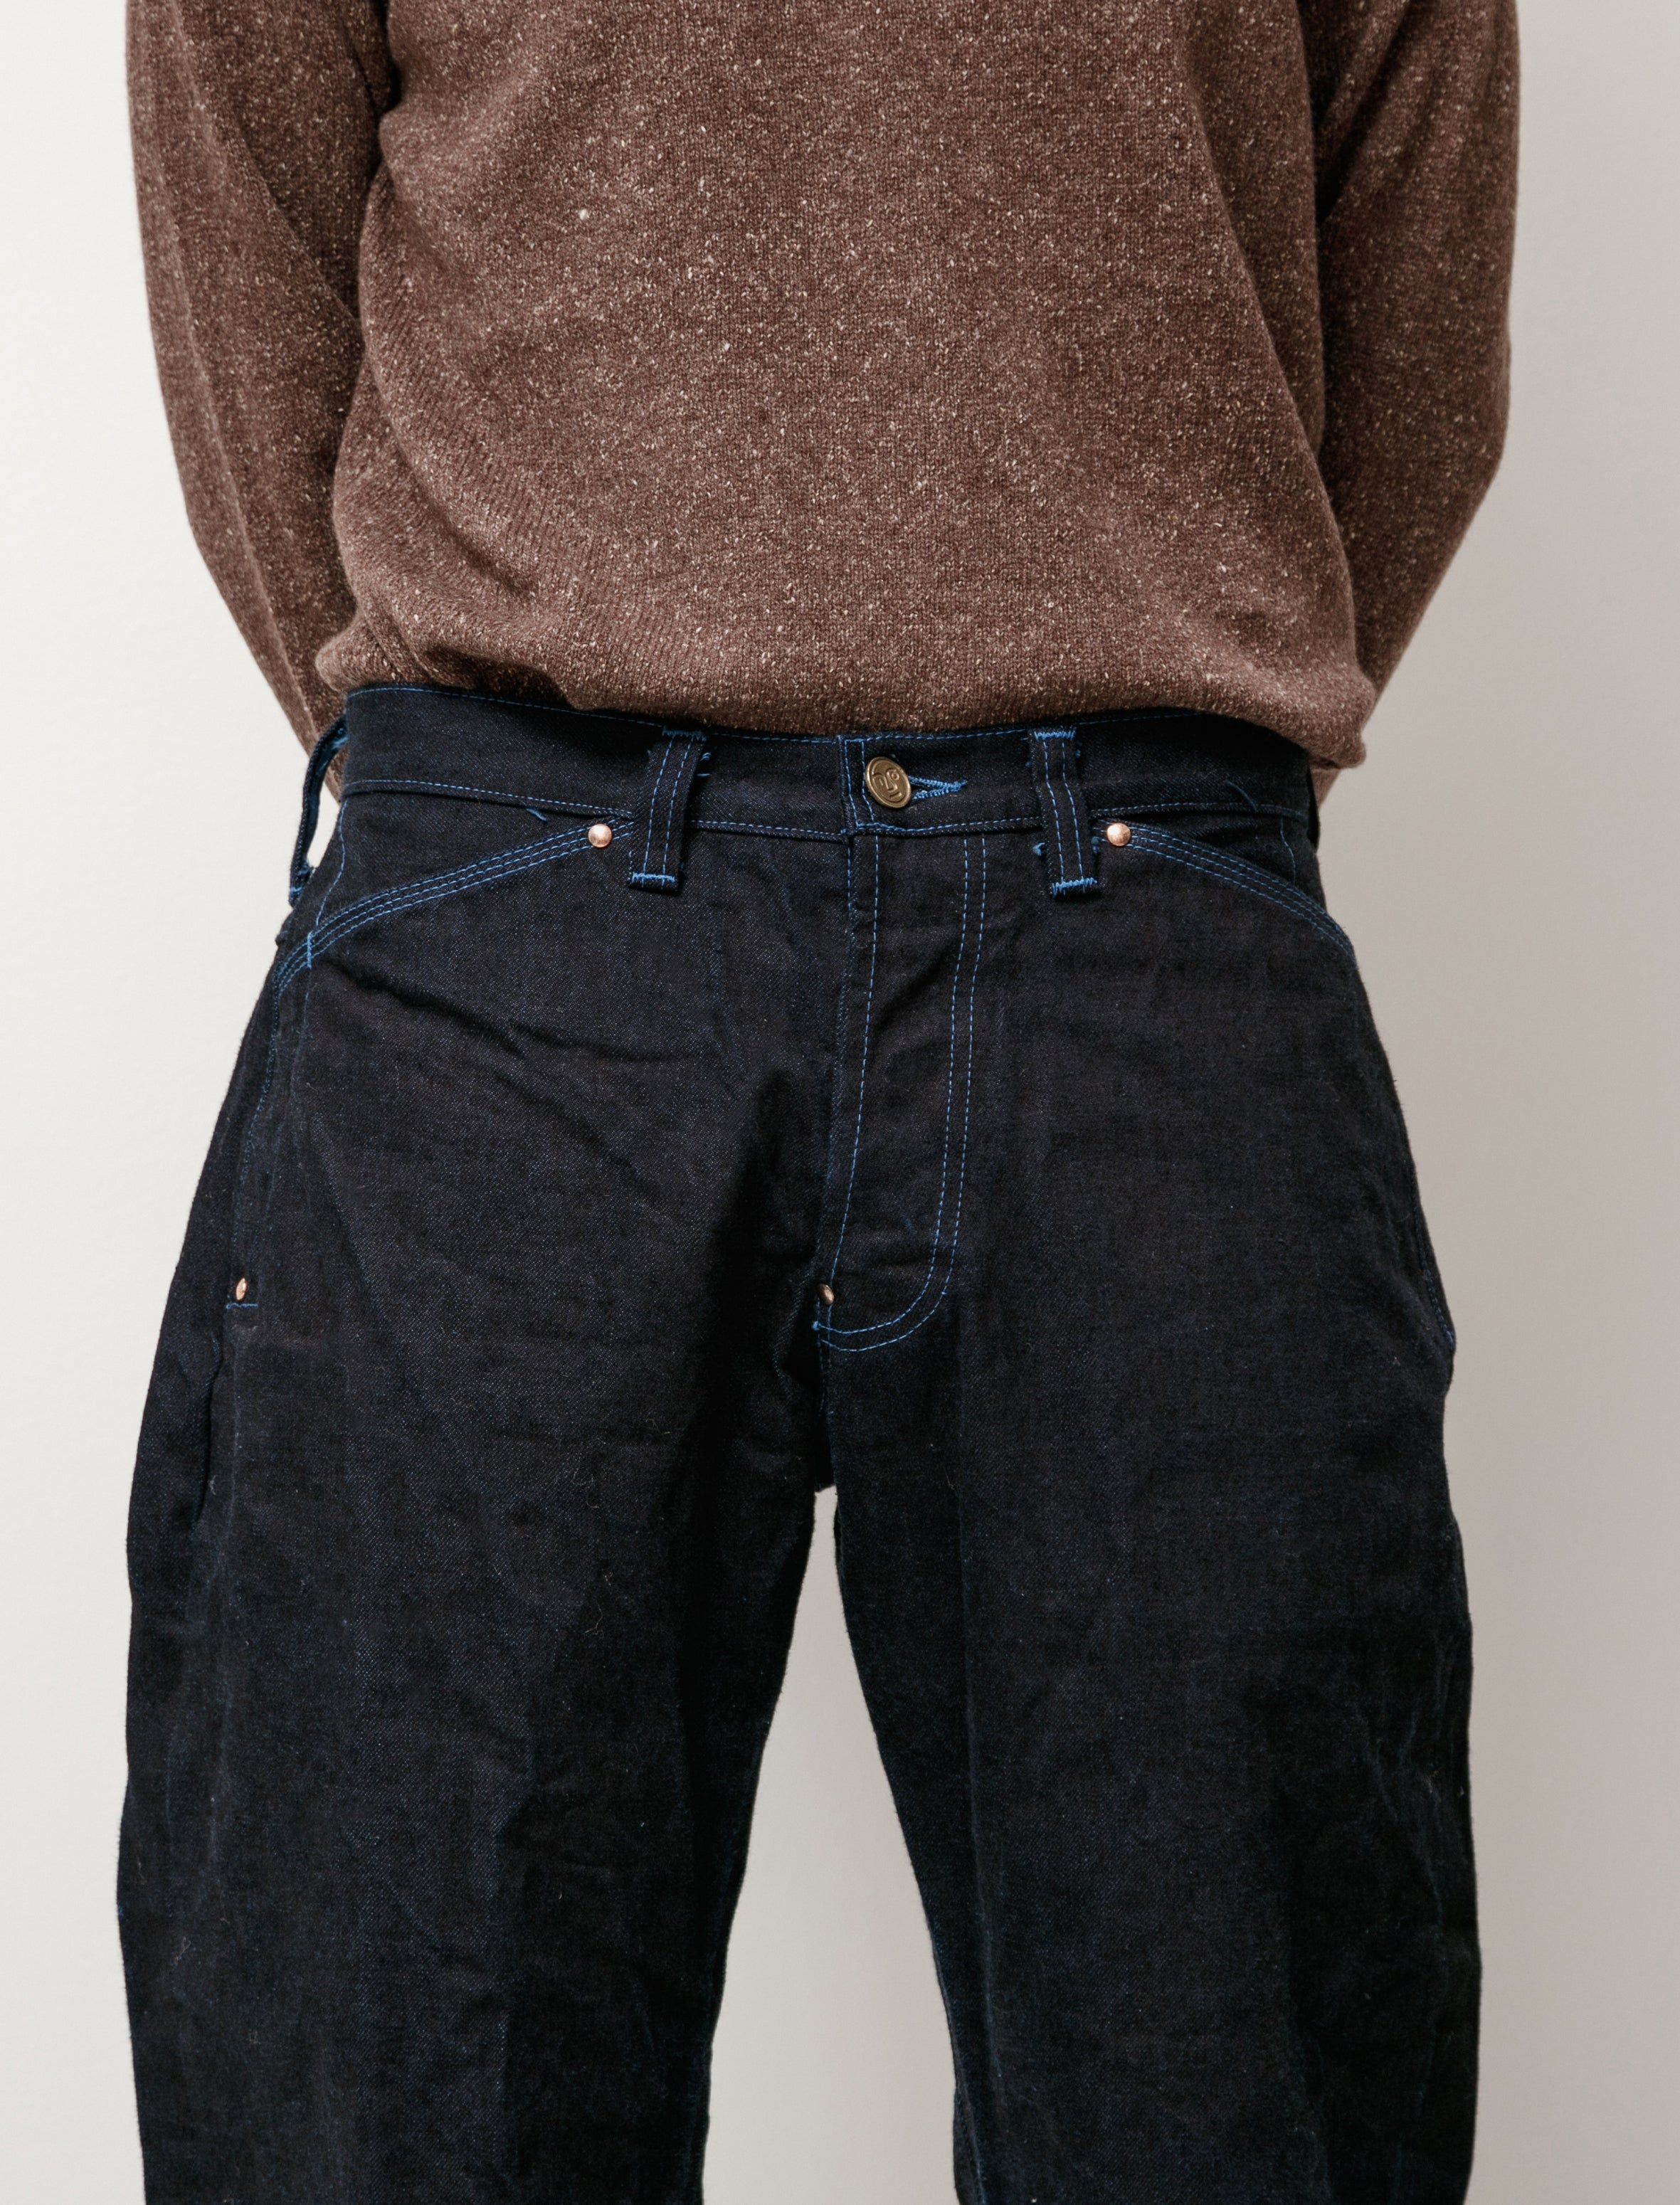 Tender Ten Years 132 Jean Selvage